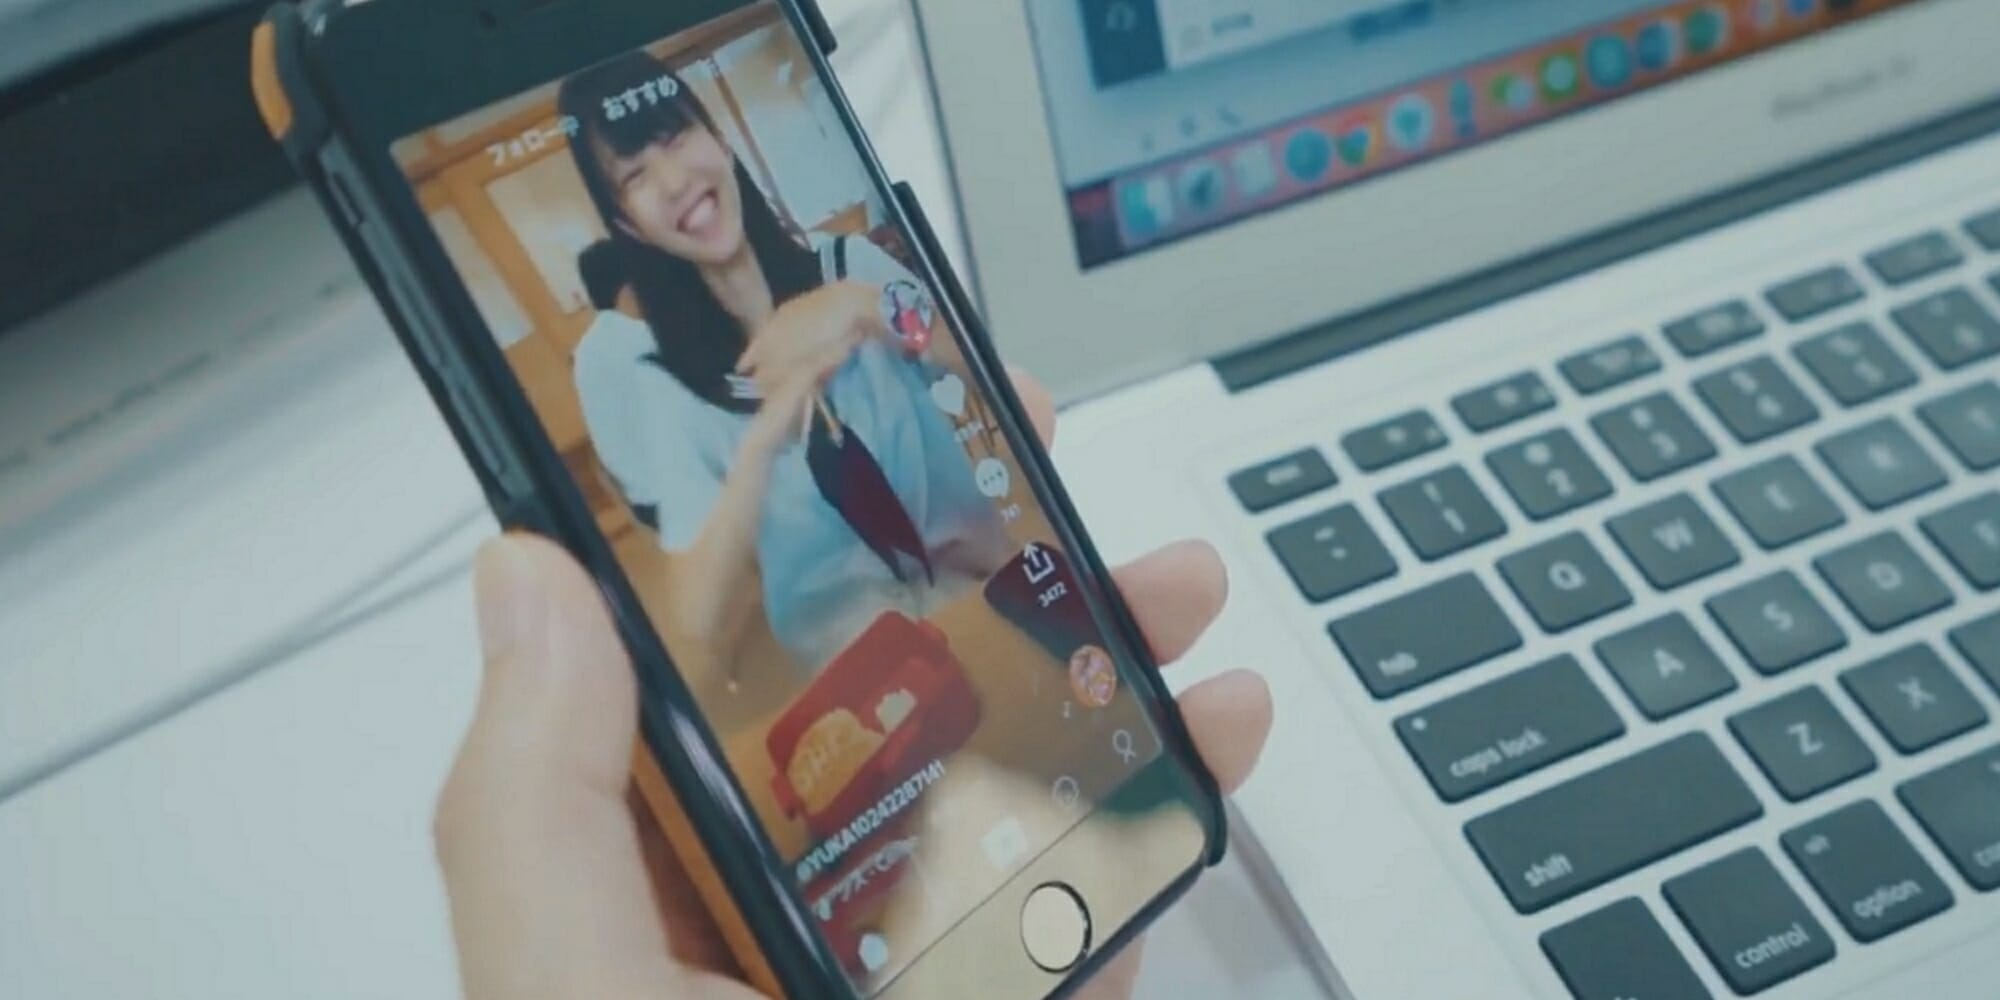 TikTok's owner just became the world's most valuable startup.